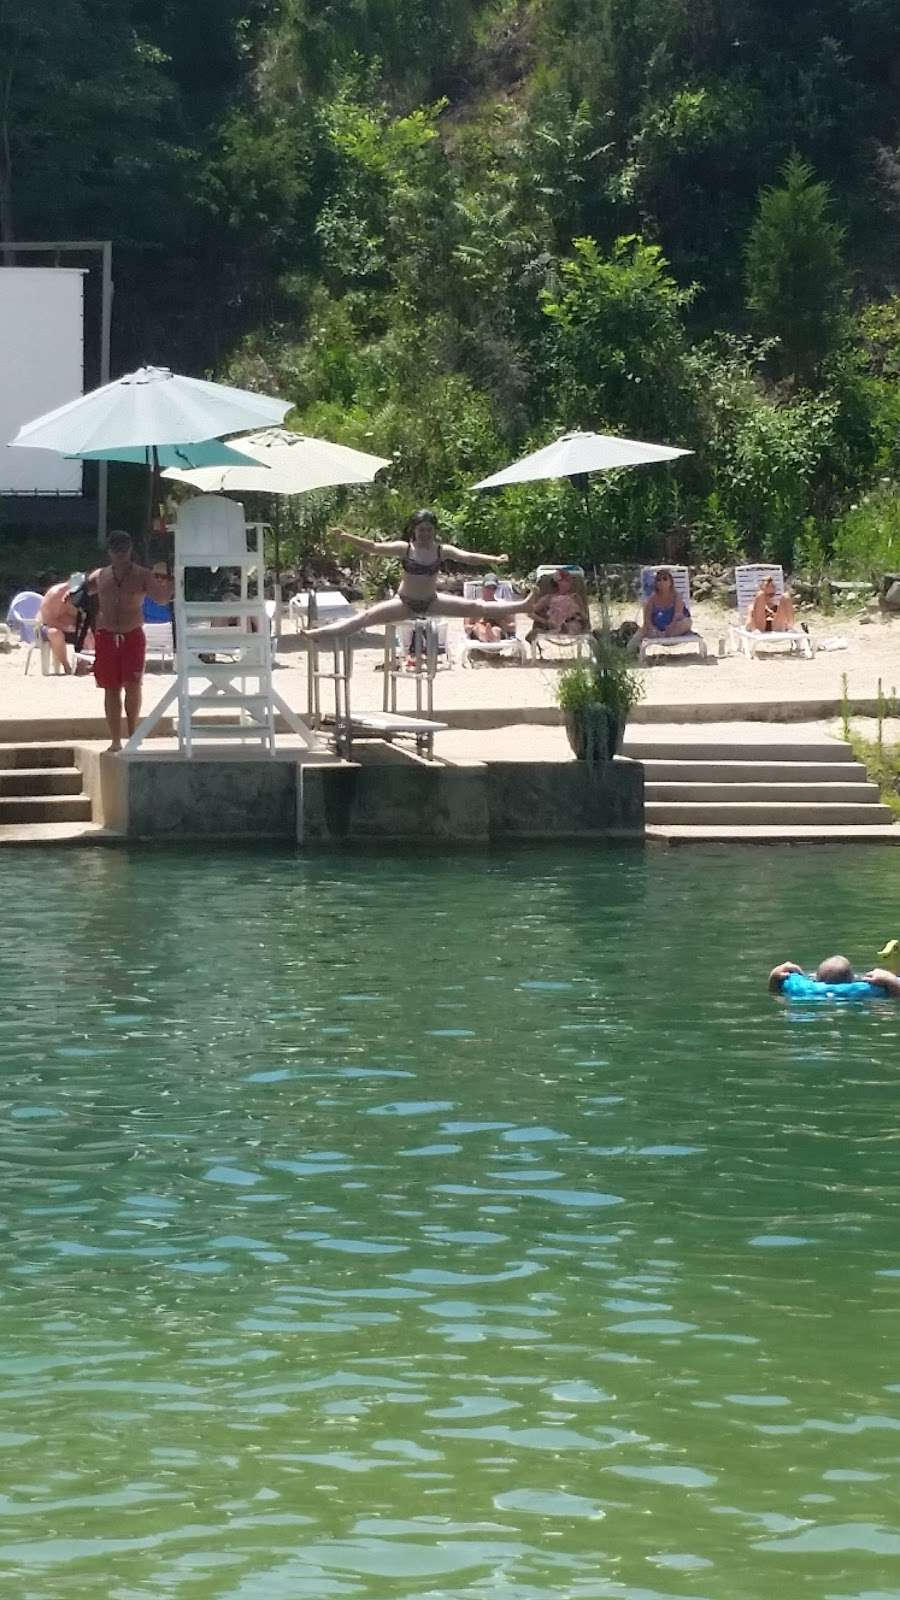 Quarry Pool Association - lodging  | Photo 1 of 5 | Address: 1146 S New St, West Chester, PA 19382, USA